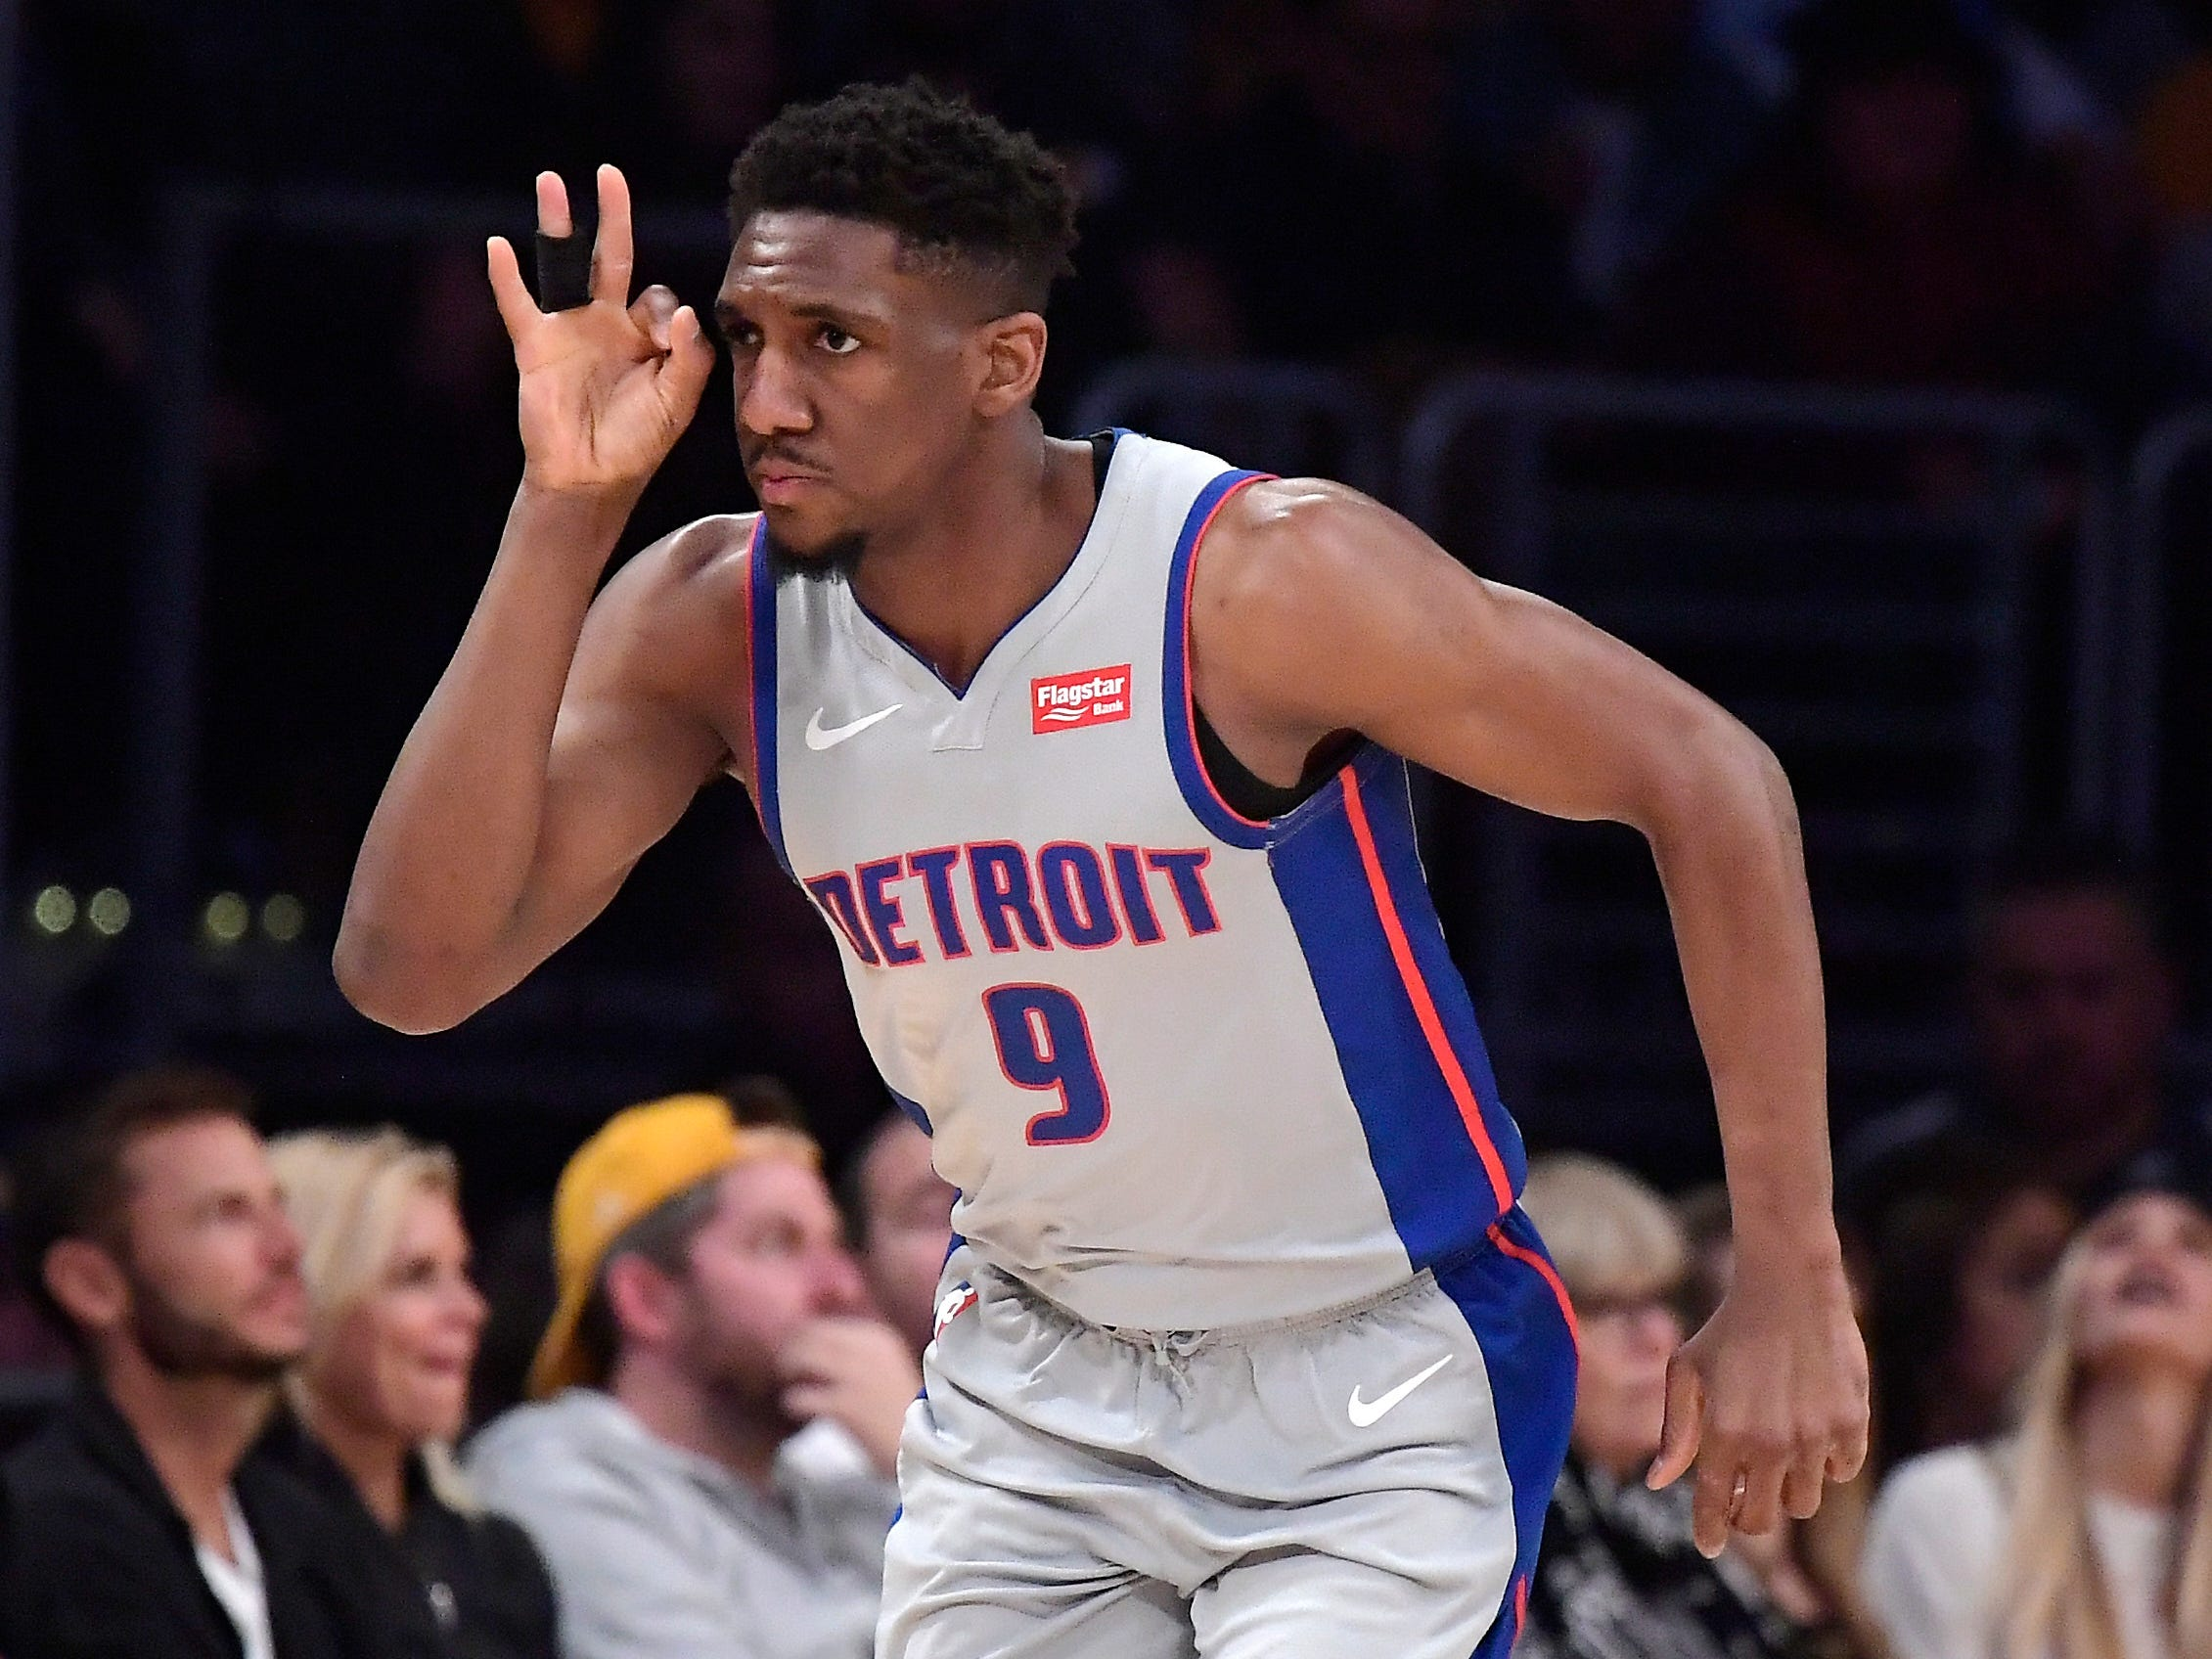 Detroit Pistons guard Langston Galloway gestures after hitting a 3-point shot during the second half.